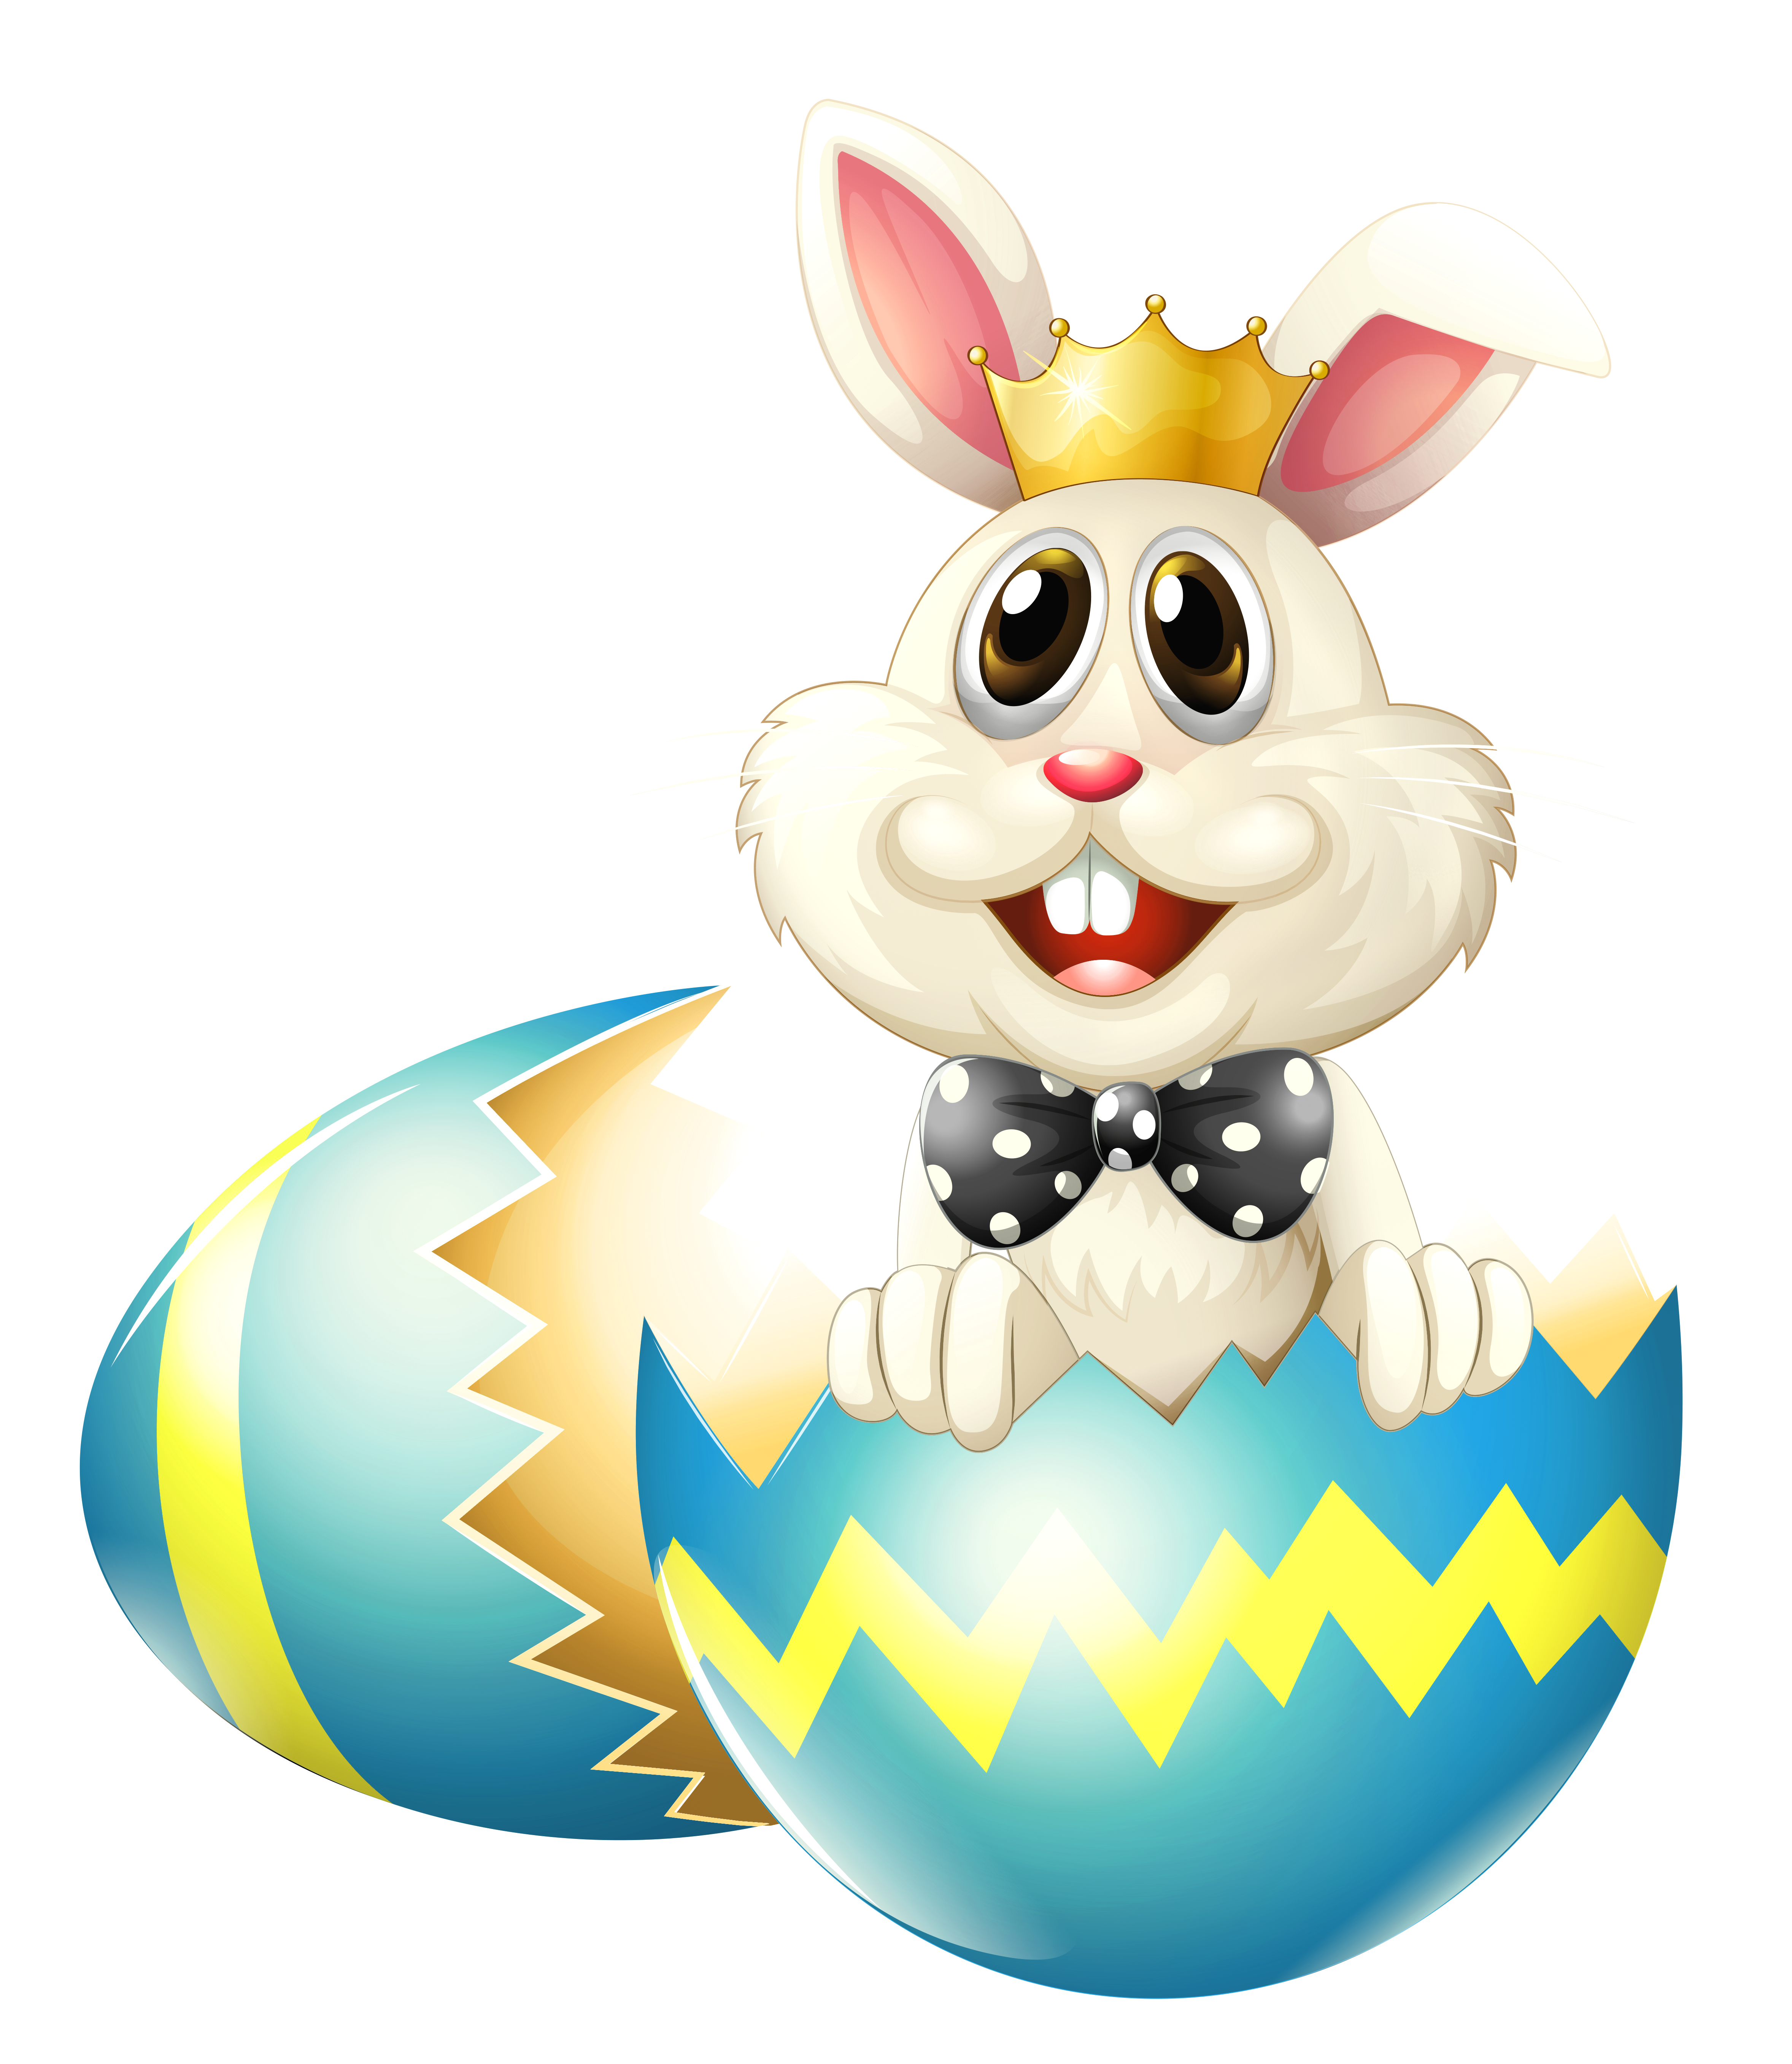 Easter Bunny Png Image PNG Image